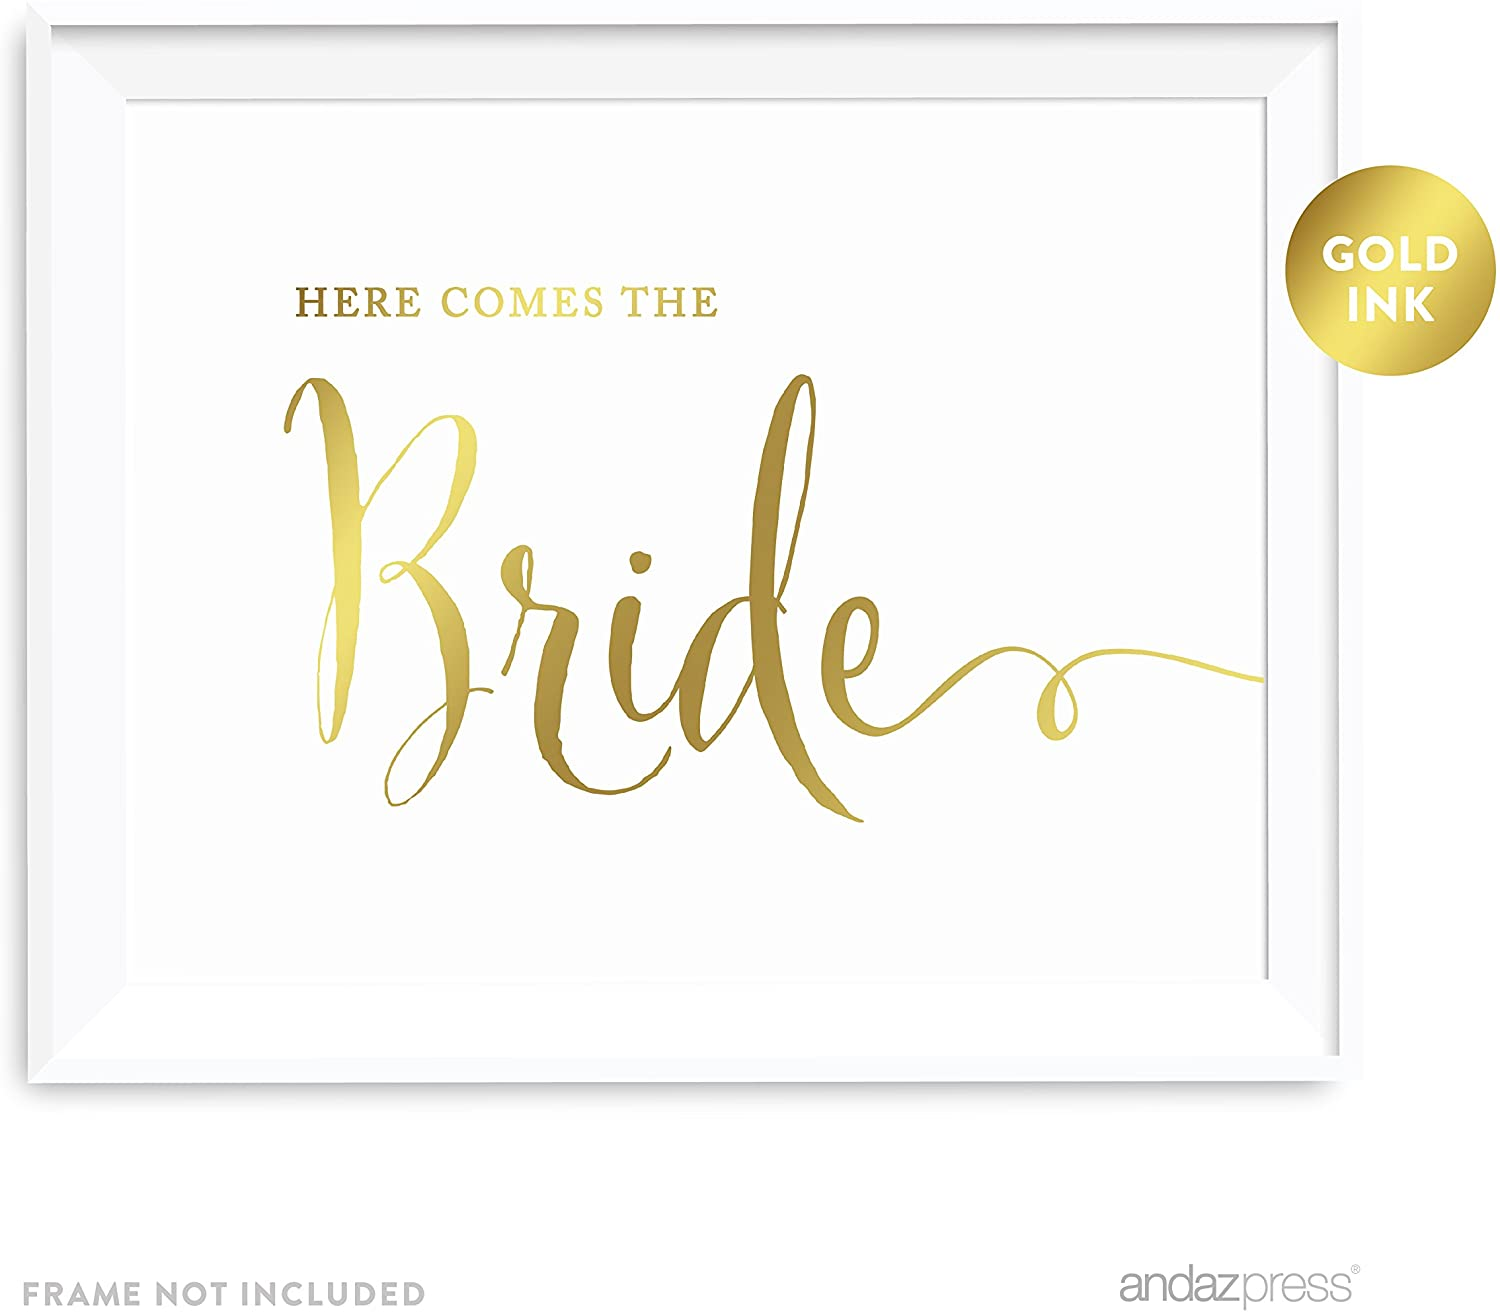 Andaz Press Wedding Party Signs, Metallic Gold Ink Print, 8.5x11-inch, Here Comes The Bride Flower Girl or Ring Bearer Ceremony Sign, 1-Pack, Unframed